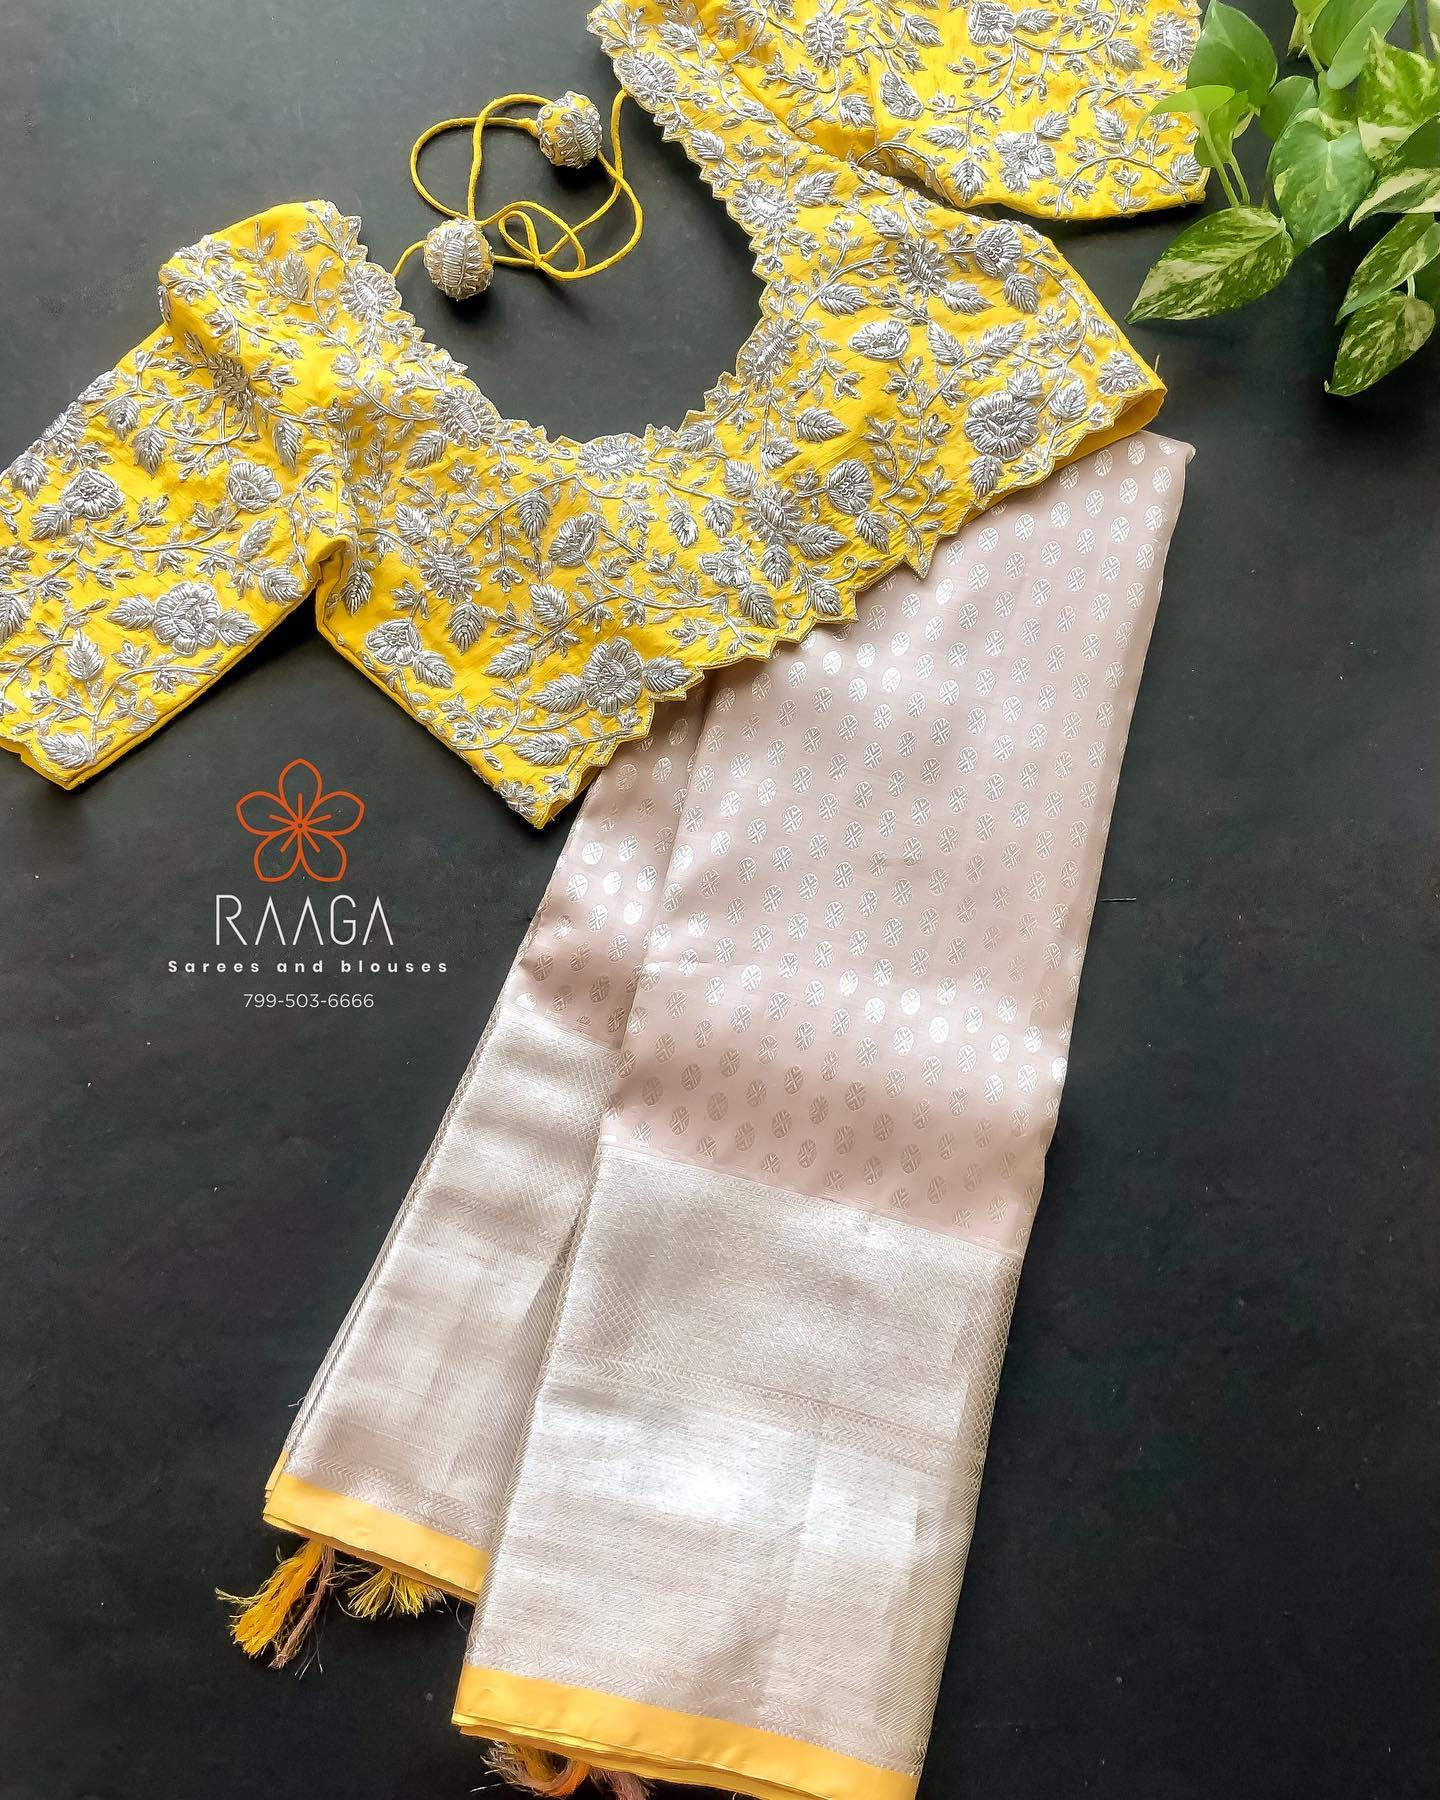 Custom made hand worked blouses paired up with pure silk sarees for upcoming wedding season . Stunning yellow colour blouse design with floral hand embroidery silver thread maggam work. Maggam work blouse for pattu sarees.  2021-05-06